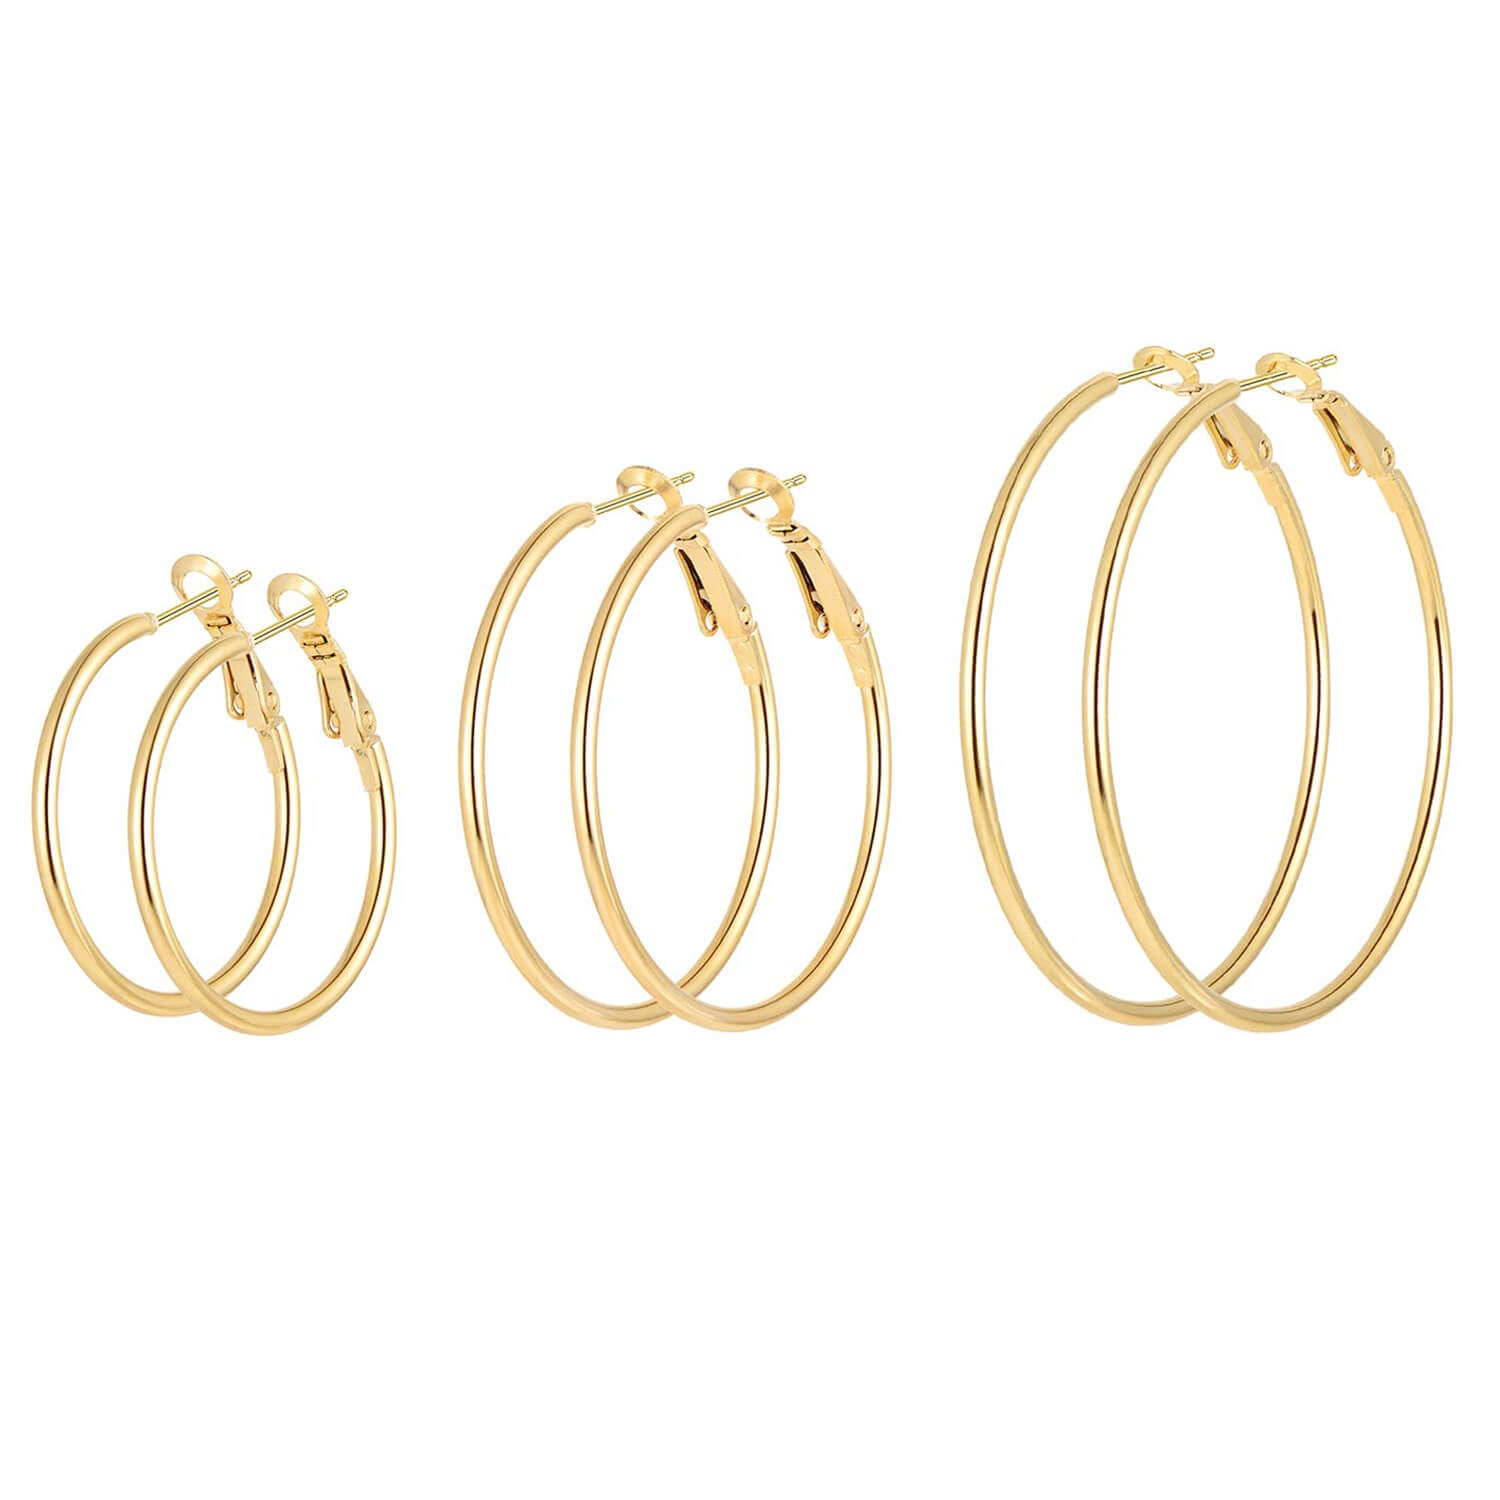 3 Pairs Big Hoop Earrings Stainless Steel Hypoallergenic Dainty Loop Earrings for Women Girls(40 50 60mm)